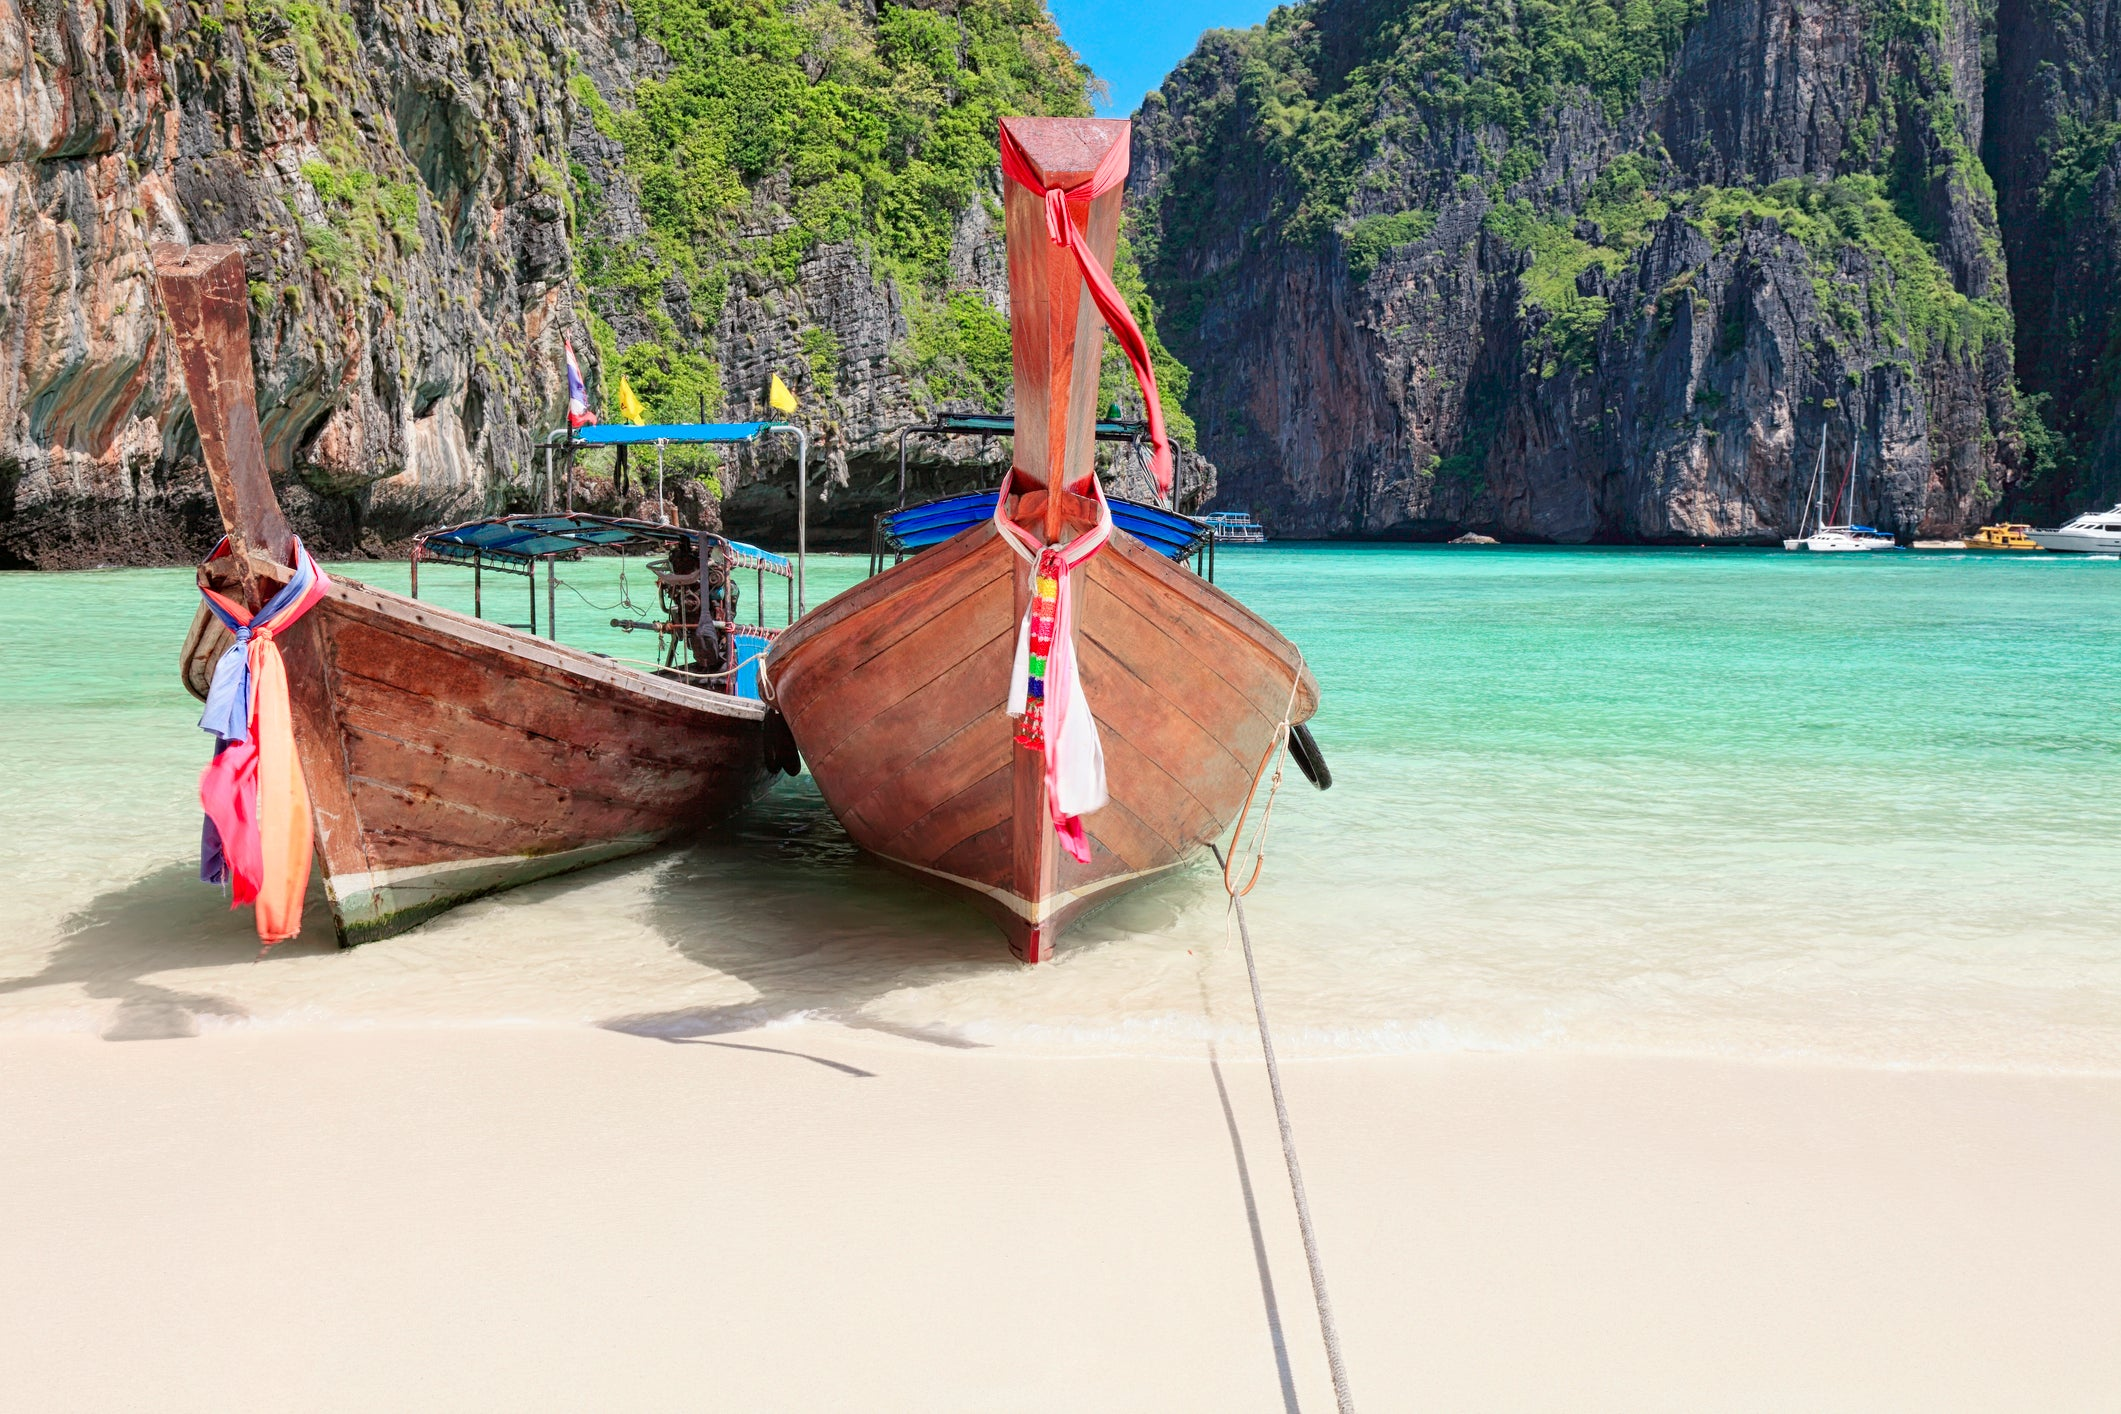 Thailand's famous Maya Bay from film The Beach to close due to excessive tourism numbers